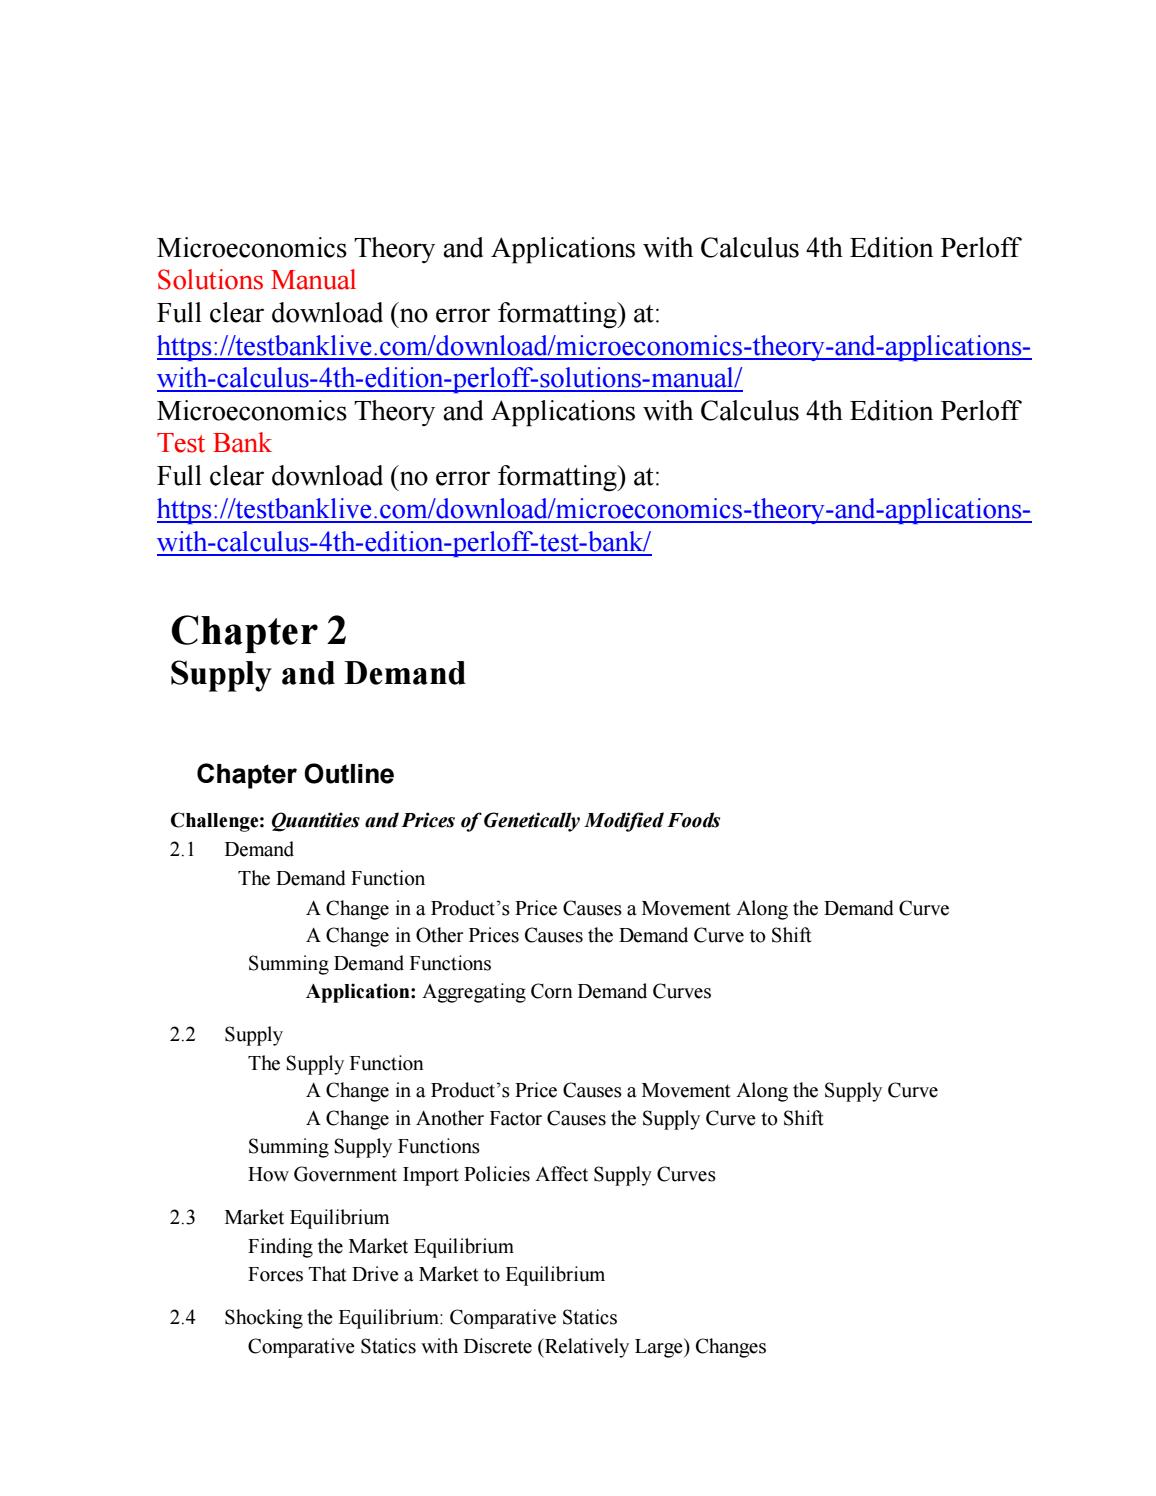 Microeconomics theory and applications with calculus 4th